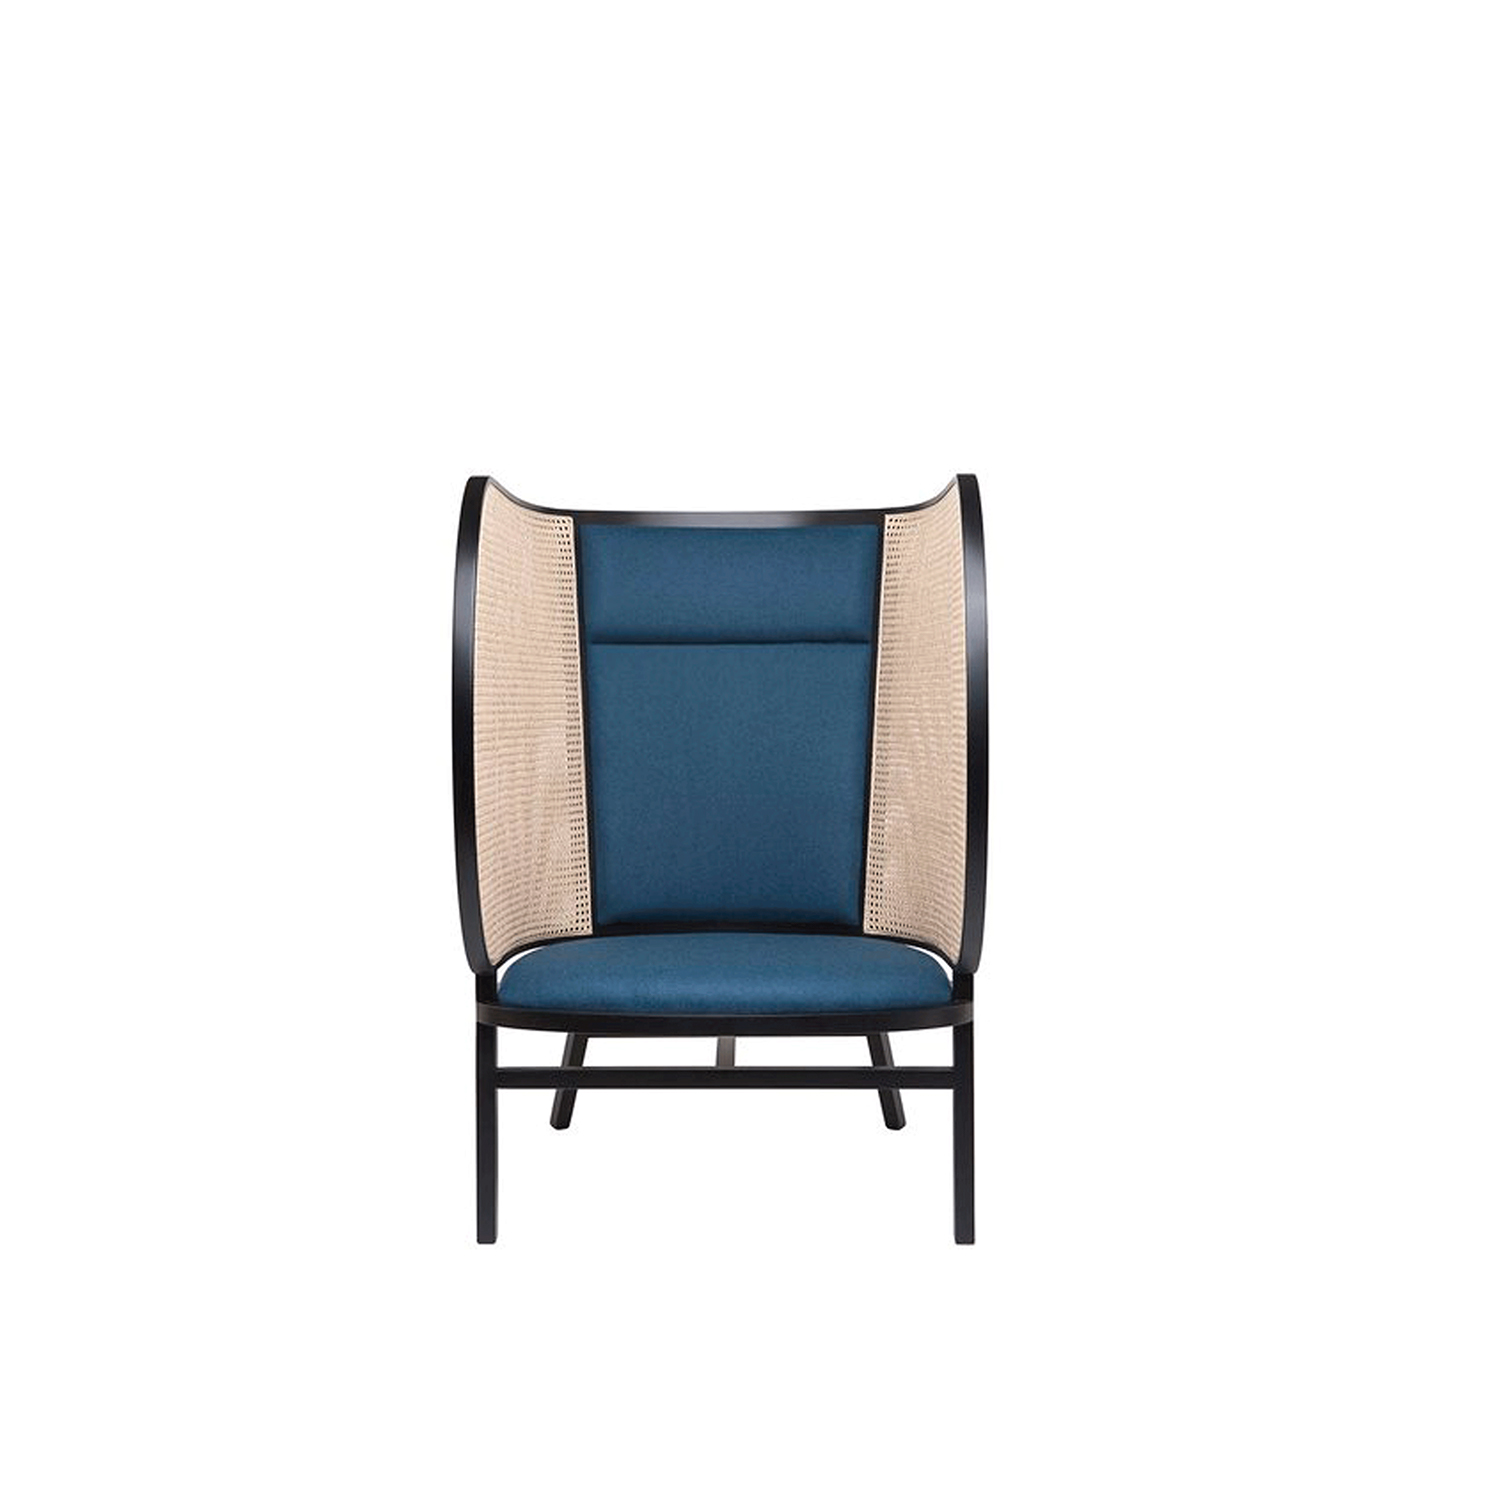 Hideout Lounge Chair - A magnificent and intimate piece, this lounge chair was designed by Front in 2015. It features two staples of Viennese traditional furniture: the Viennese straw that covers the enveloping sides, and the steam-bent beechwood with black lacquered finish. The structure features a round section and boasts a high back that creates a welcoming spot in a modern living room or classic study. A cushion adds comfort to the seat and central backrest.  | Matter of Stuff